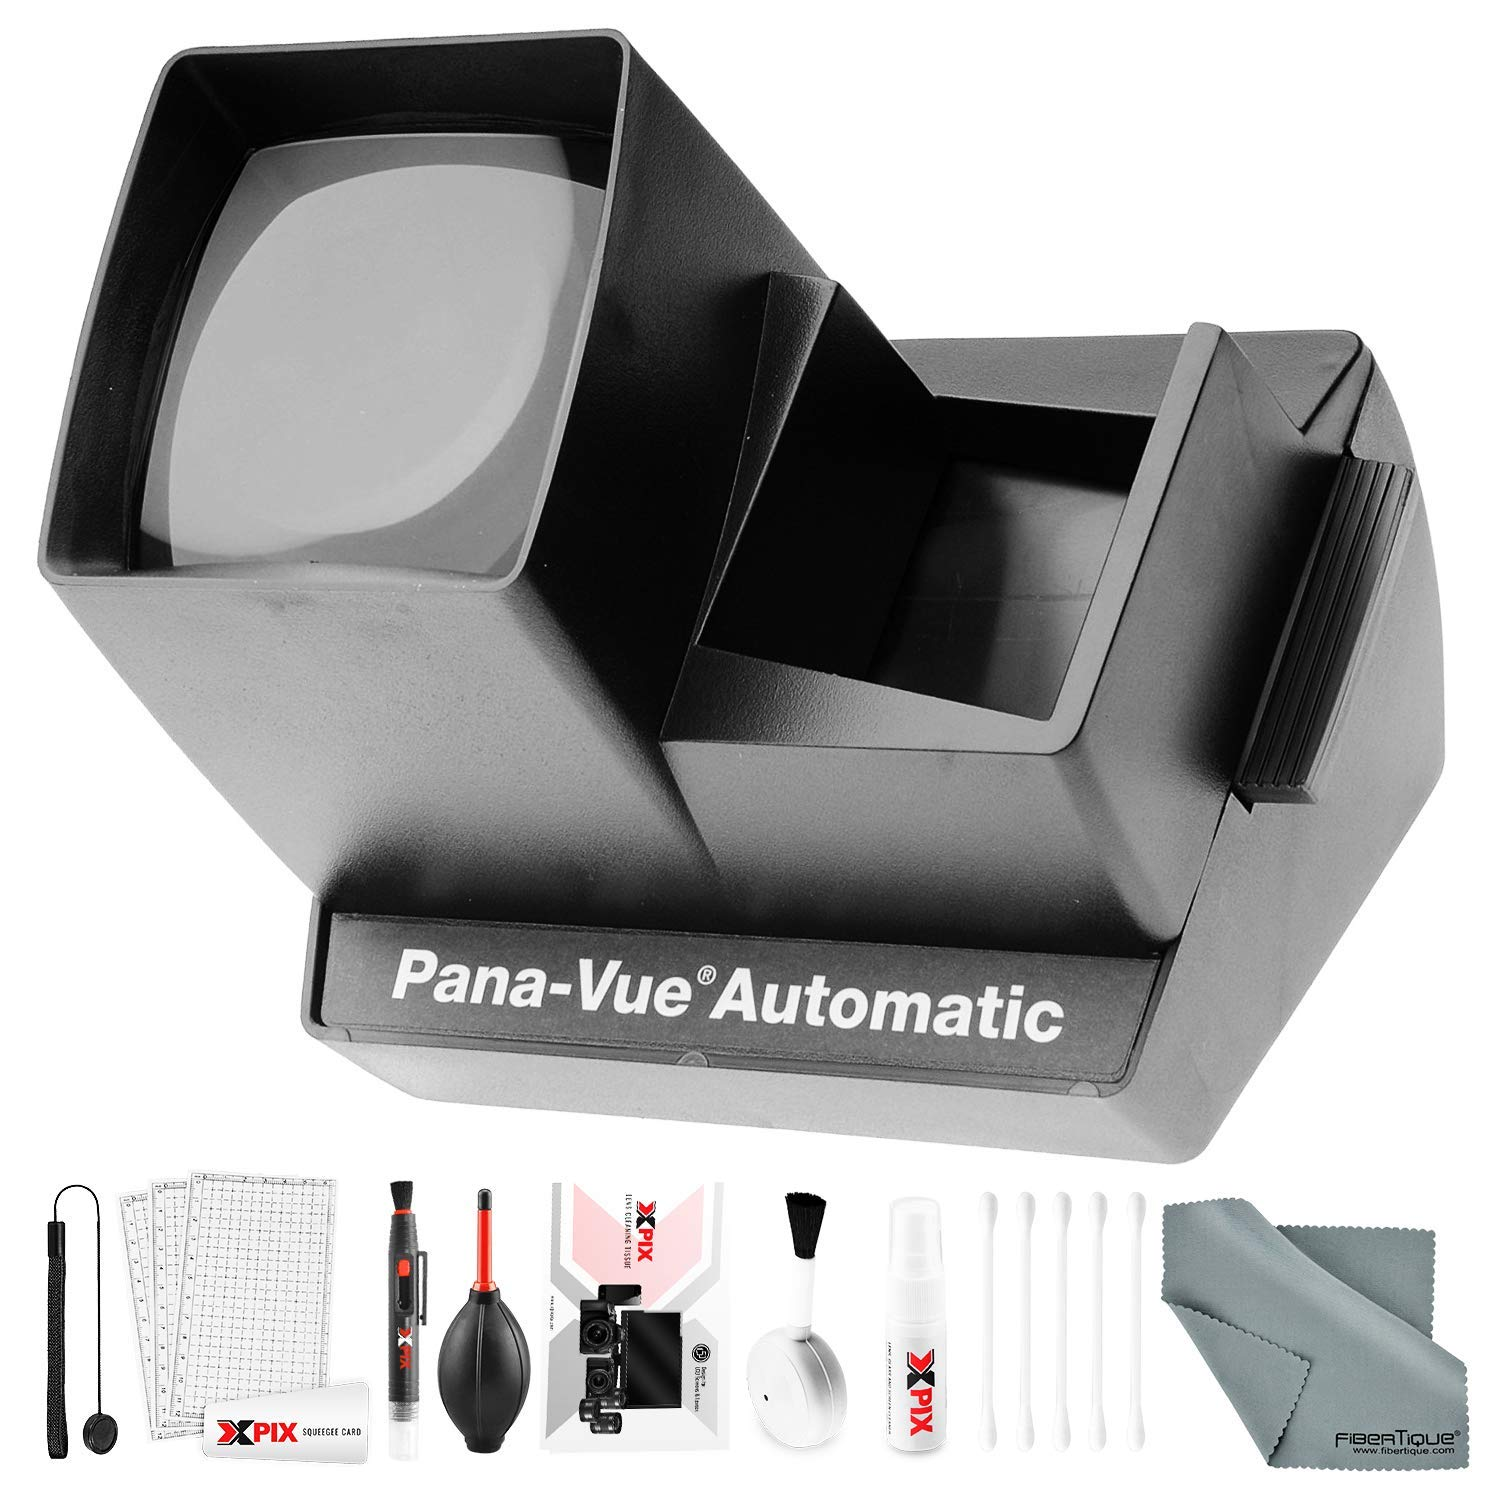 Pana-Vue 6566 Automatic Slide Viewer with Deluxe Cleaning Kit by Pana-Vue / Photo Savings